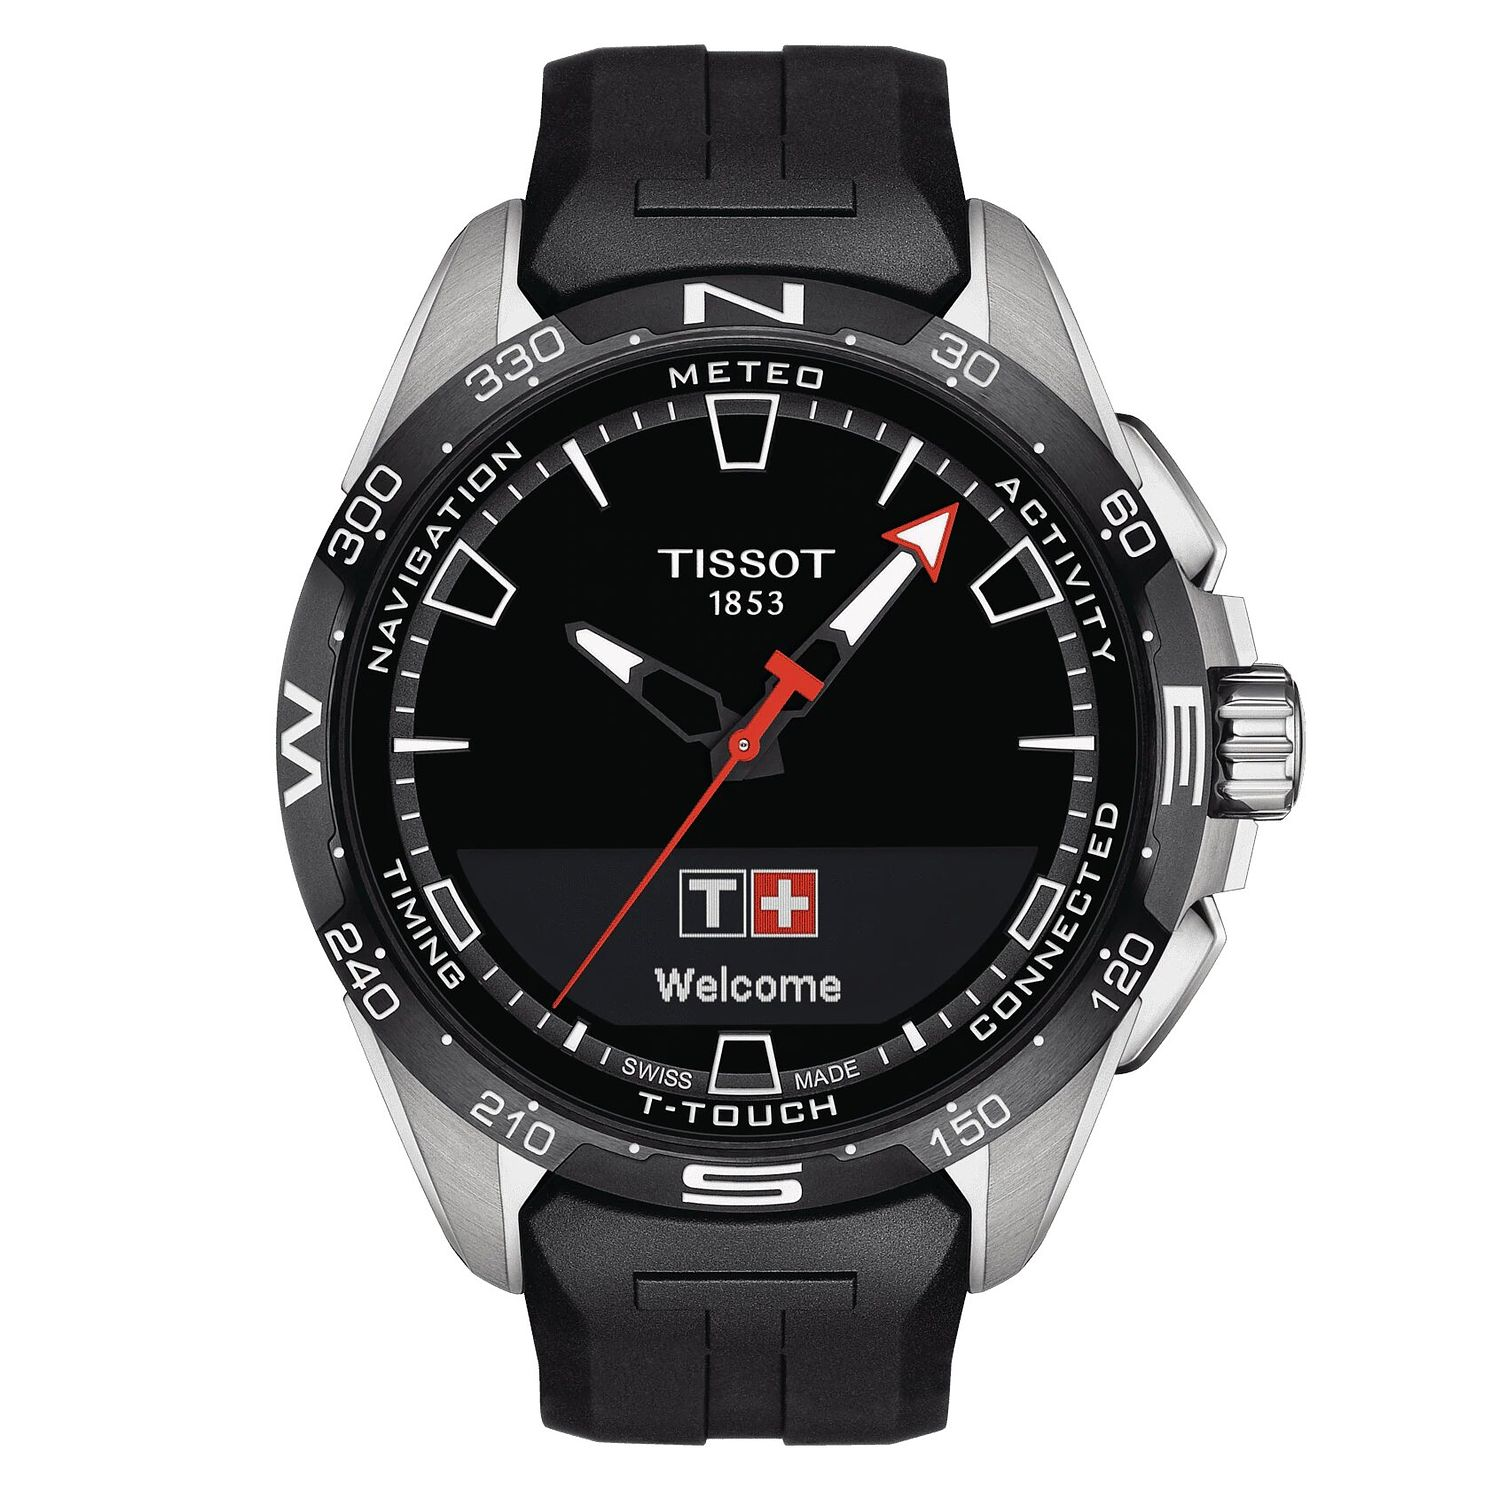 Tissot T-Touch Connect Solar Black Rubber Strap Watch - Product number 1199560